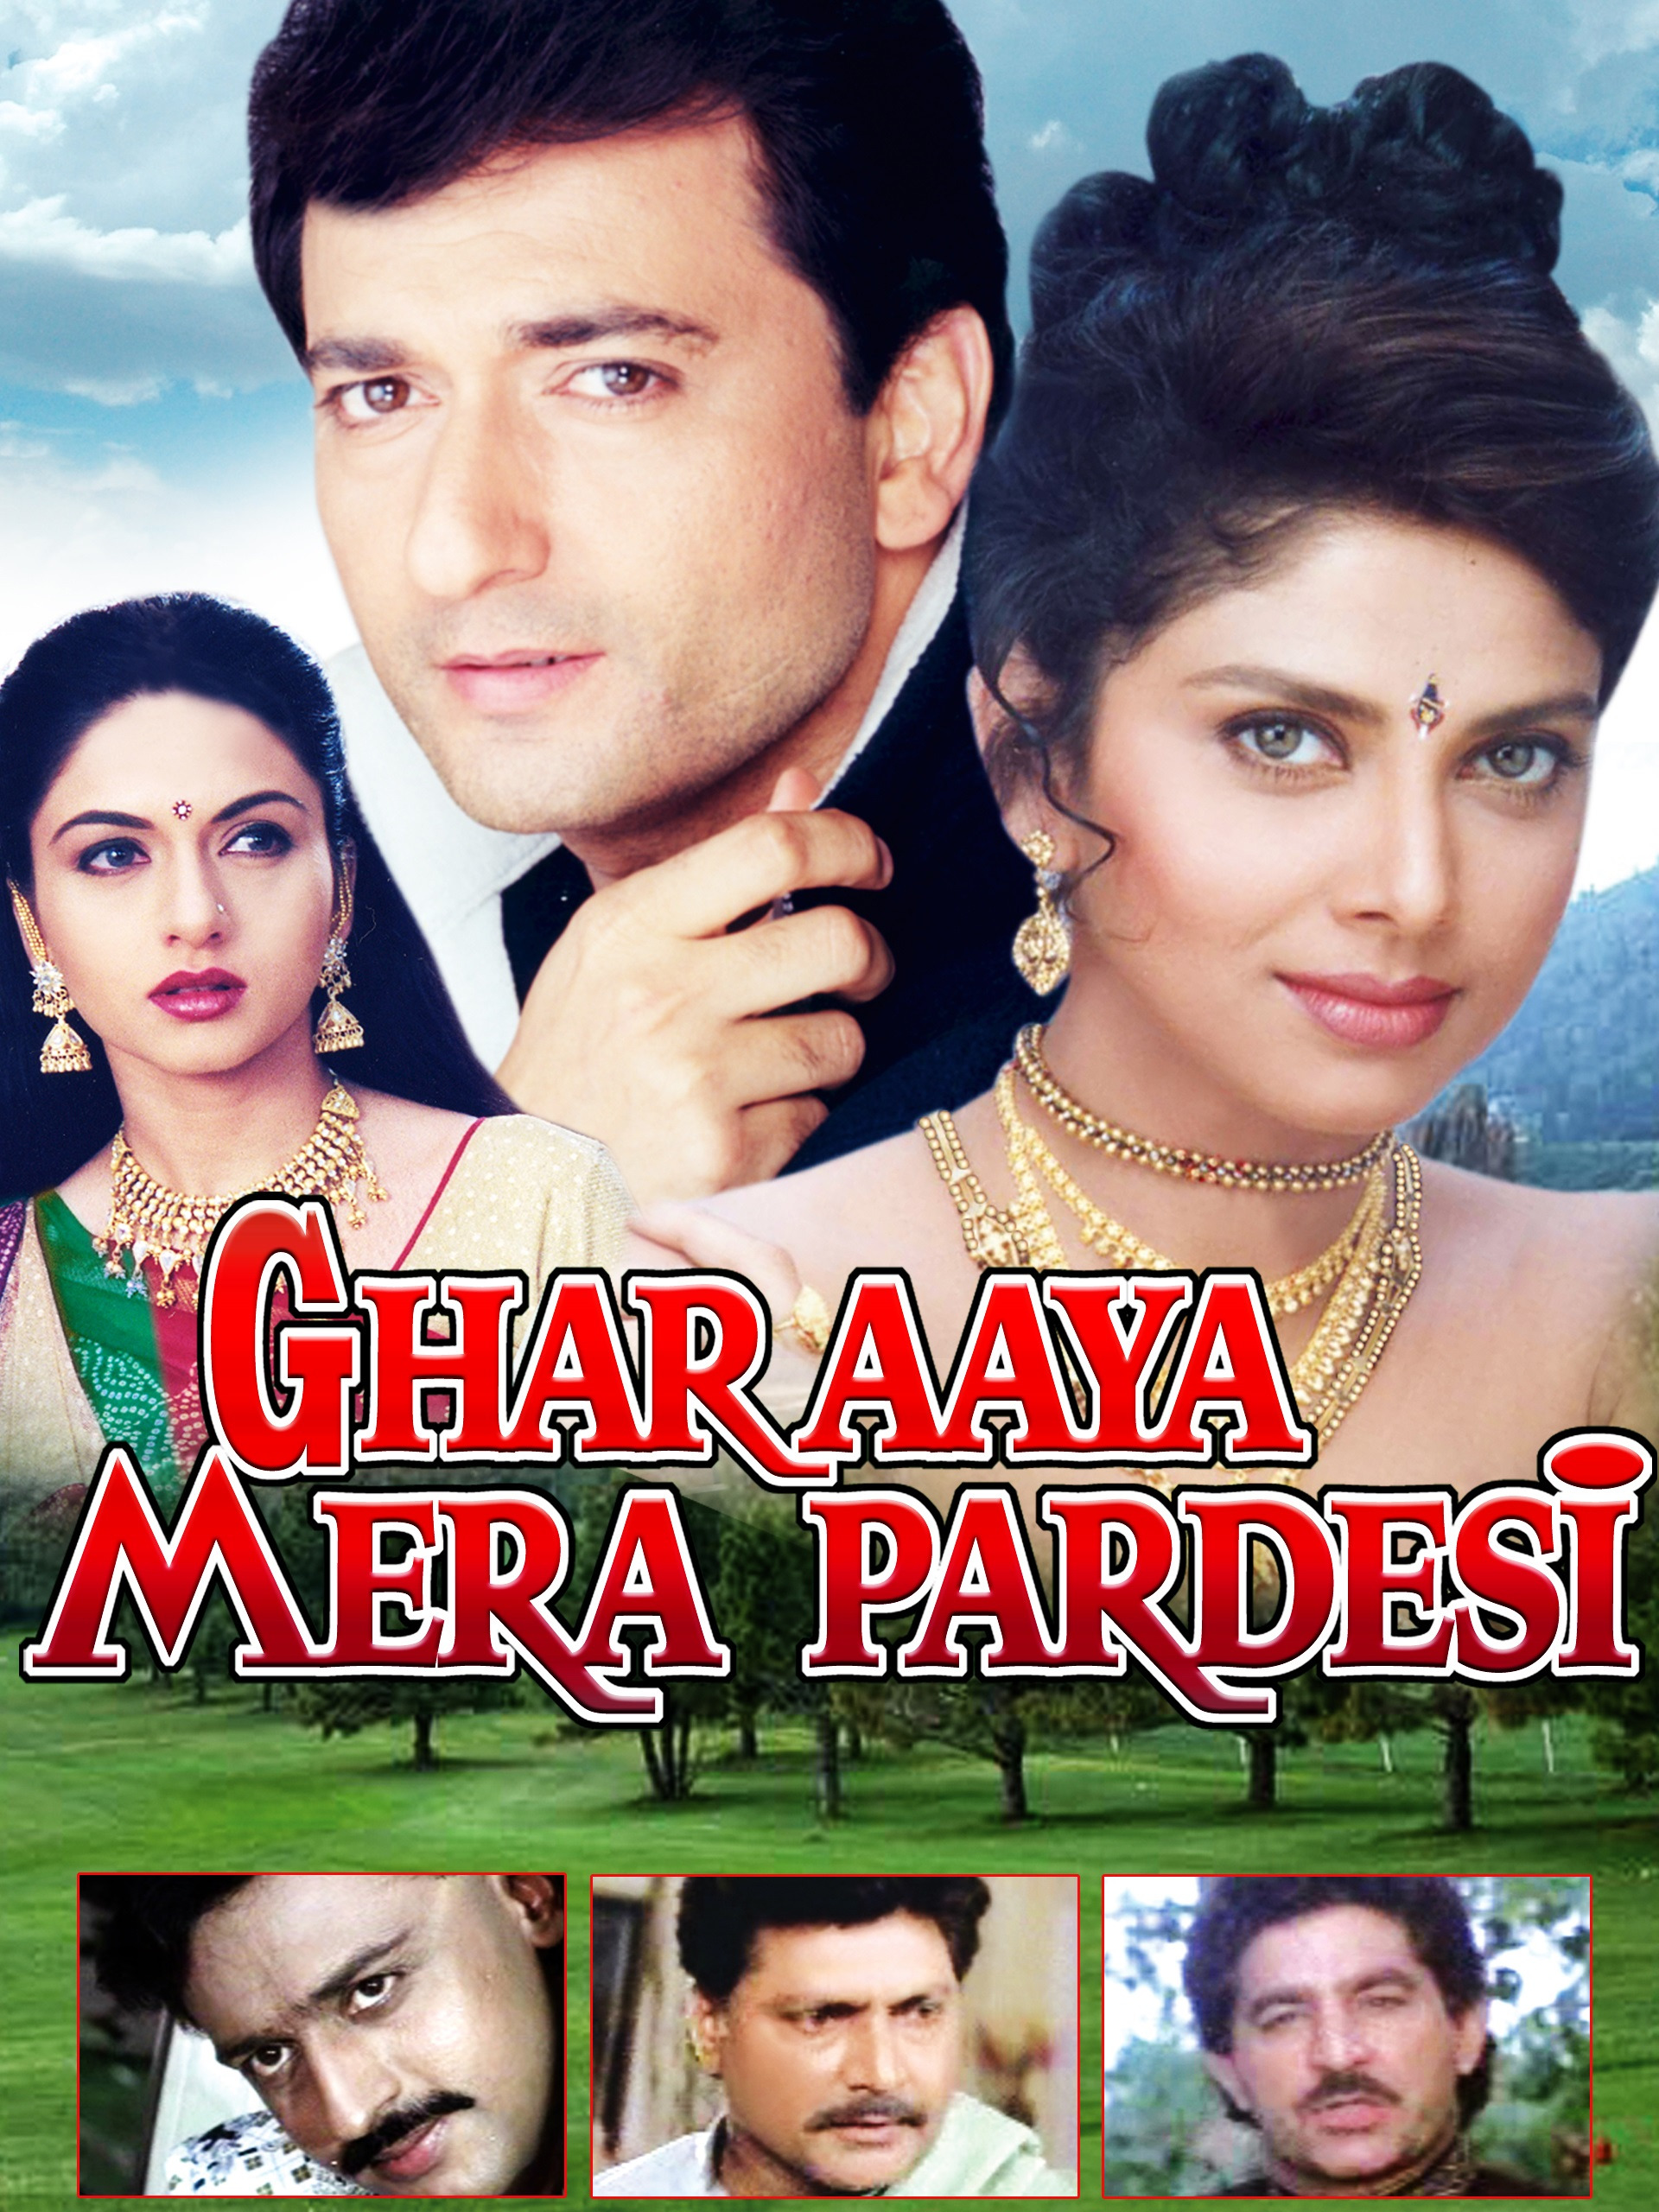 Ghar Aaya Mera Pardesi Movie Review Release Date Songs Music Images Official Trailers Videos Photos News Bollywood Hungama